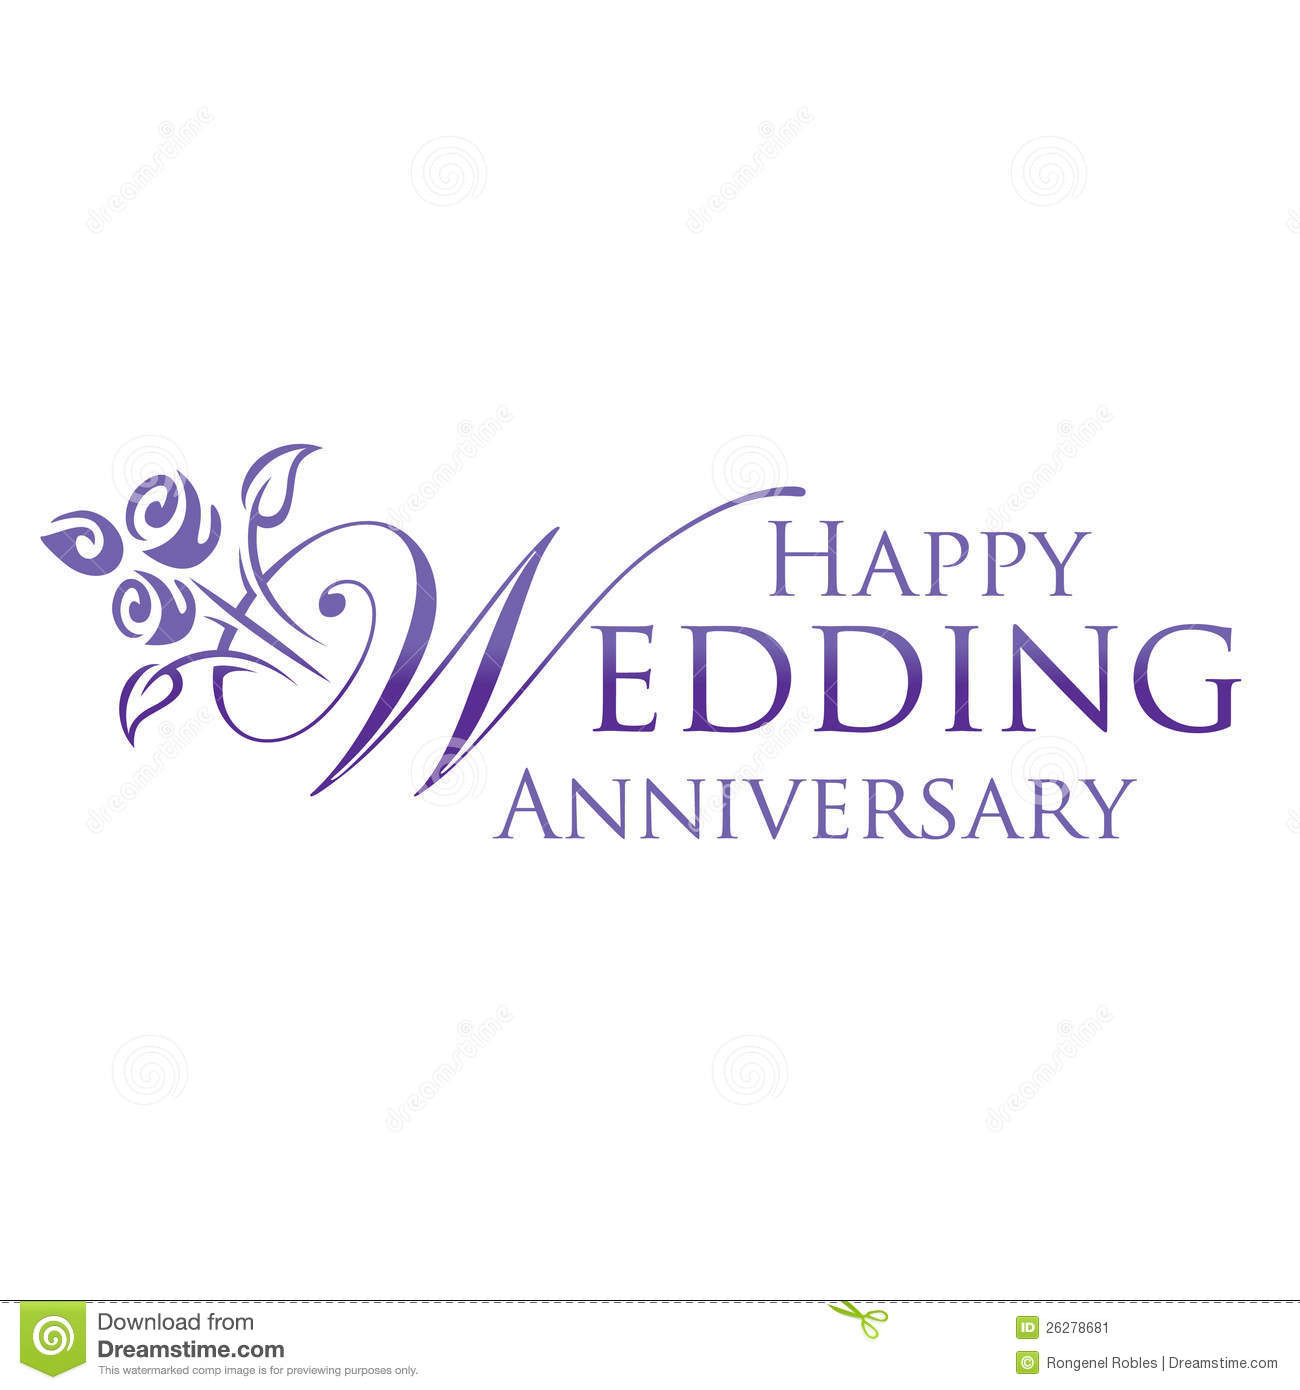 Anniversary clipart wedding anniversary.  th collection better